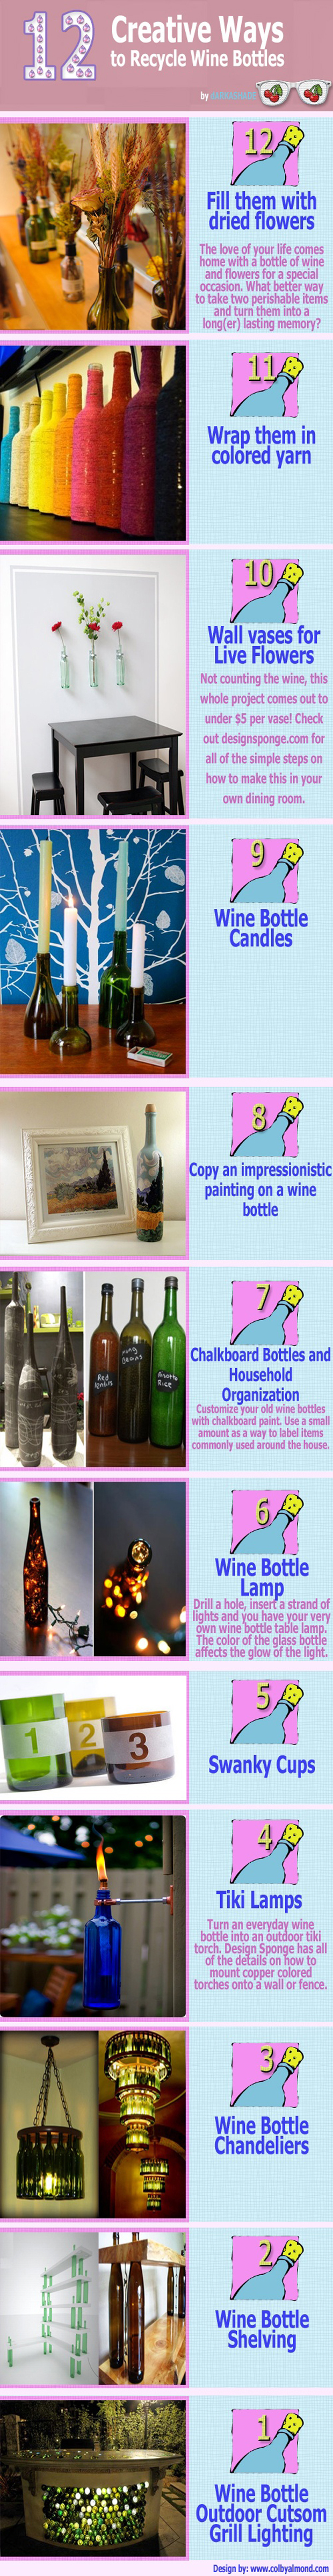 12 creative ways to recycle wine bottles - Creative ideas to reuse wine bottles ...